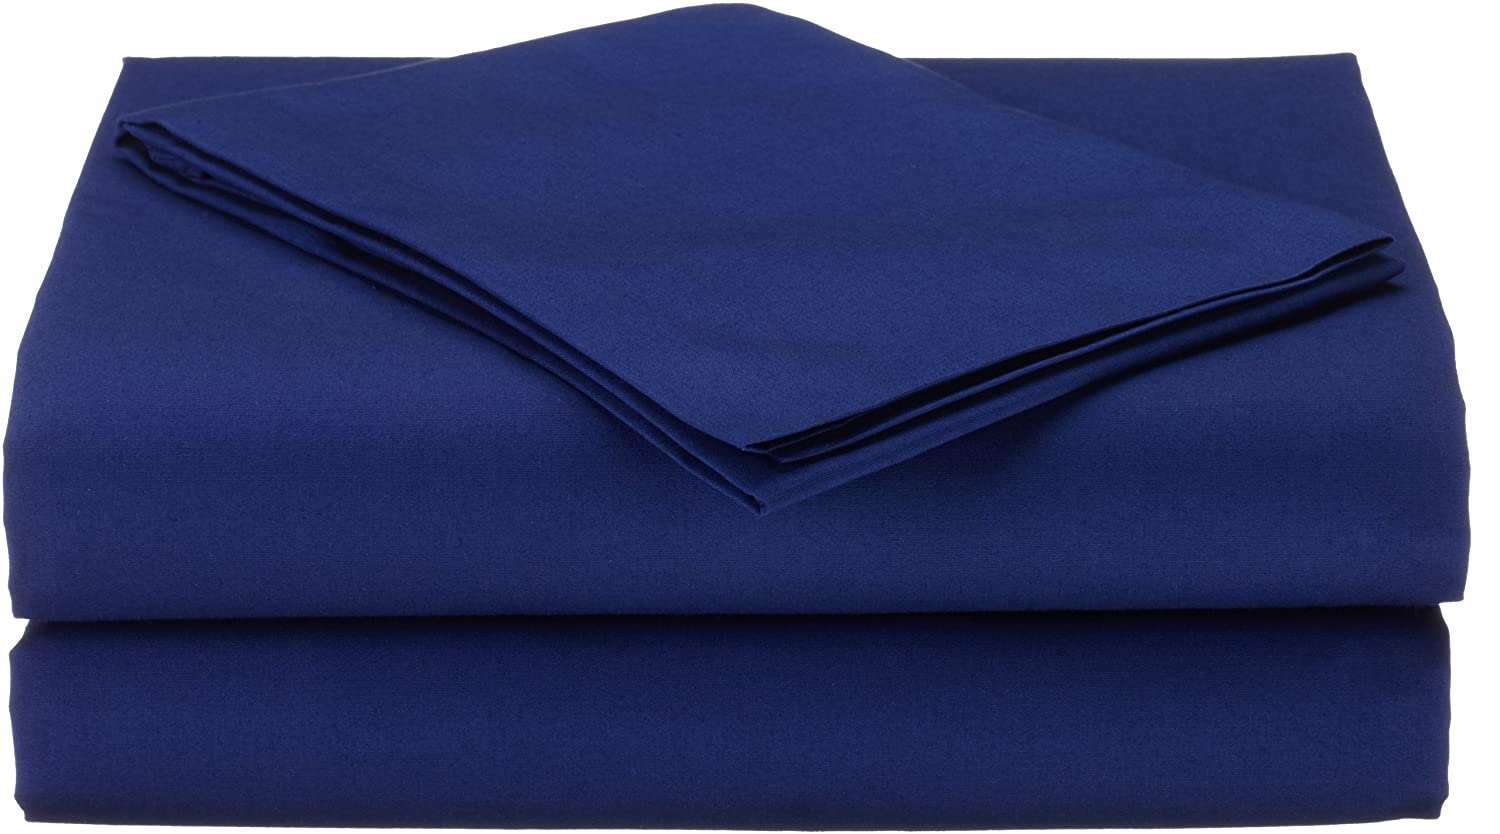 American Baby Company 100% Natural Cotton Percale Toddler Bedding Sheet Set, Blue, 3 Piece, Soft Breathable, Boys and Girls 1430